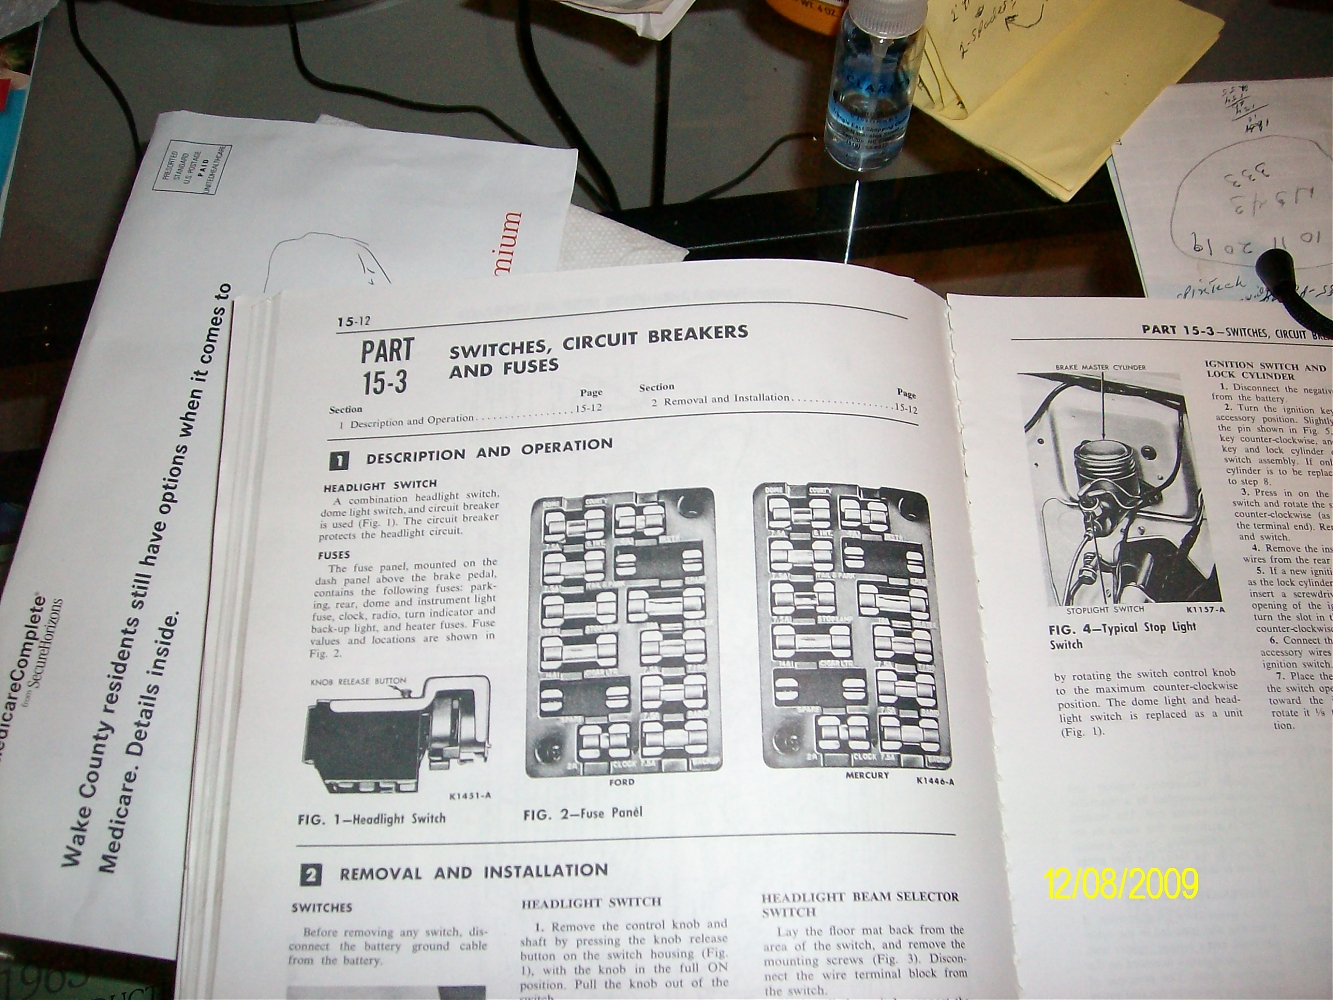 ford 500 fuse box diagram ZUoyCqG ford 500 fuse box diagram image details 1963 ford thunderbird fuse box location at edmiracle.co